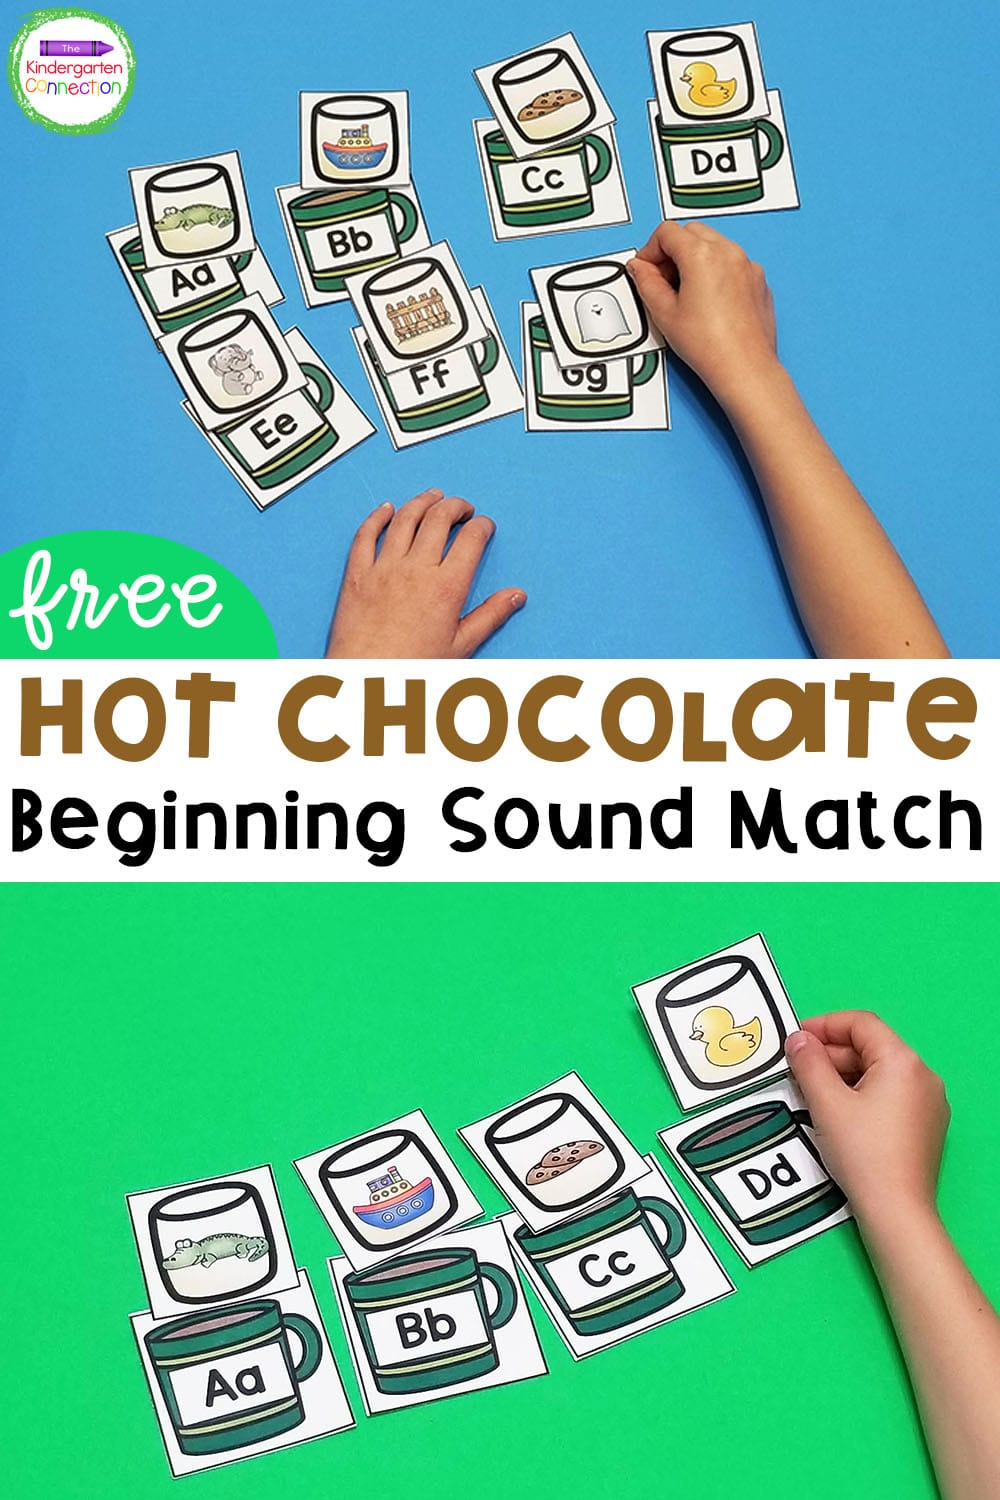 Grab our FREE Printable Hot Chocolate Beginning Sound Match Activity for Kindergarten and use in your literacy centers or small groups!